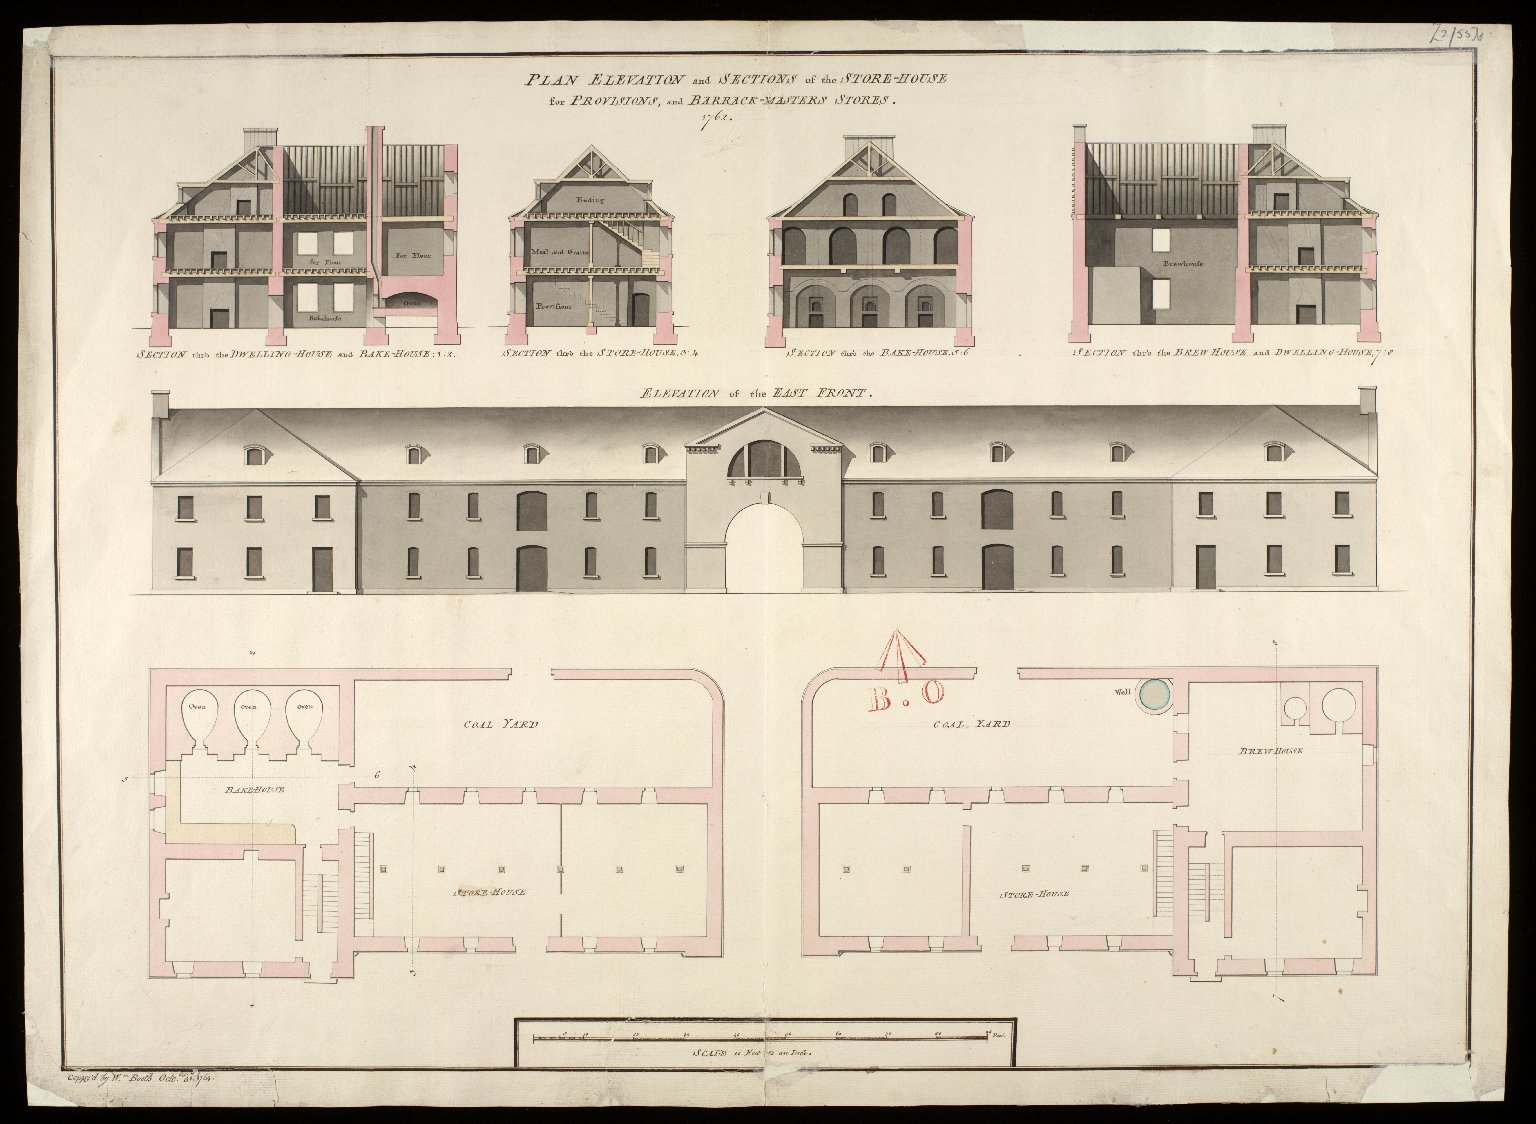 Plan elevation and sections of the store-house for provisions, and barrack-masters stores 1762 [copy] [1 of 1]